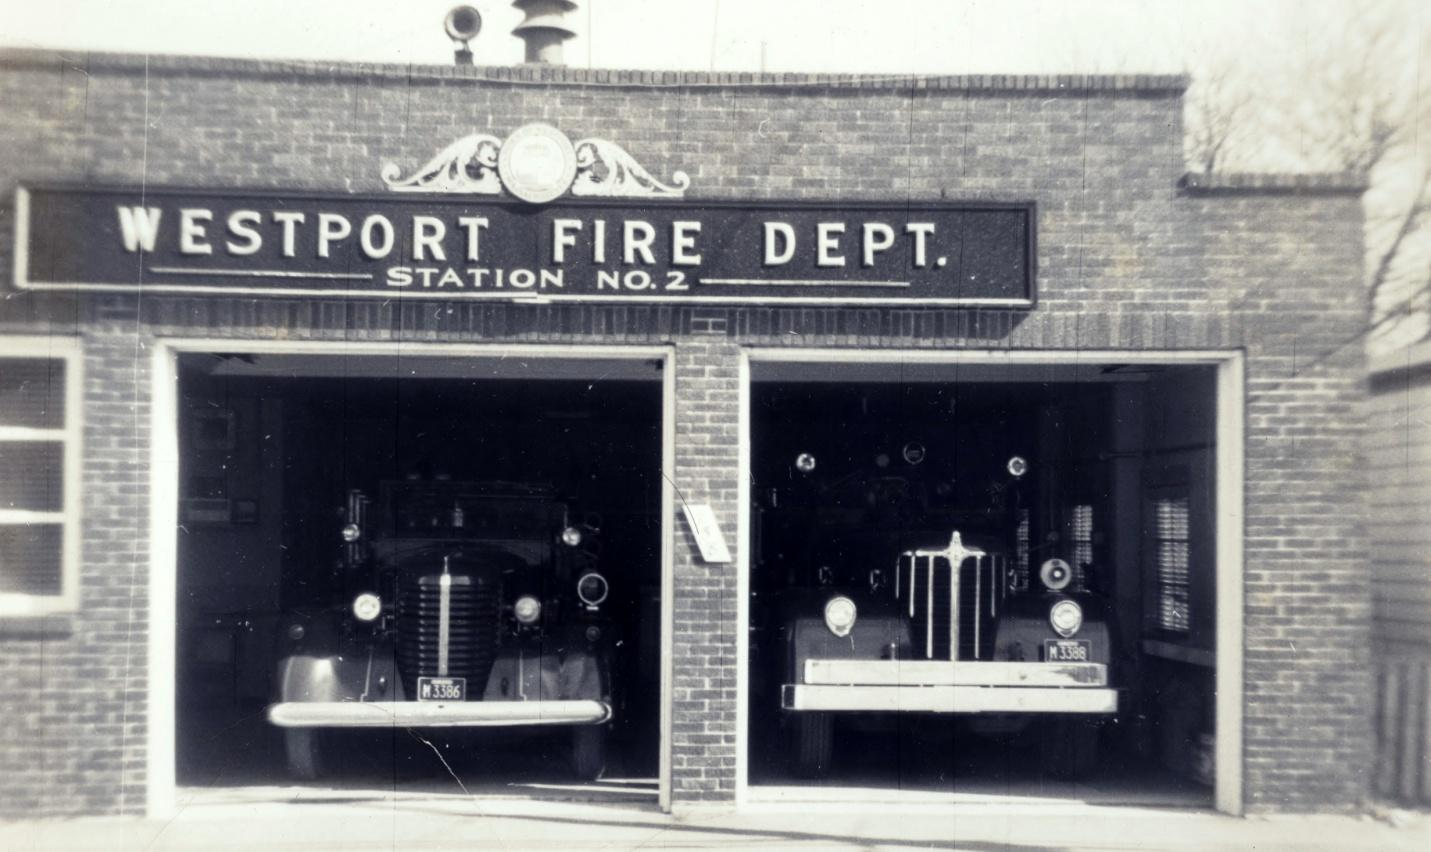 C:\Users\sam\Dropbox\DVPDESIGN - THE WESTPORT FIRE PROJECT\RAW SCANS\Session 1\Scan-120318-0059.jpg